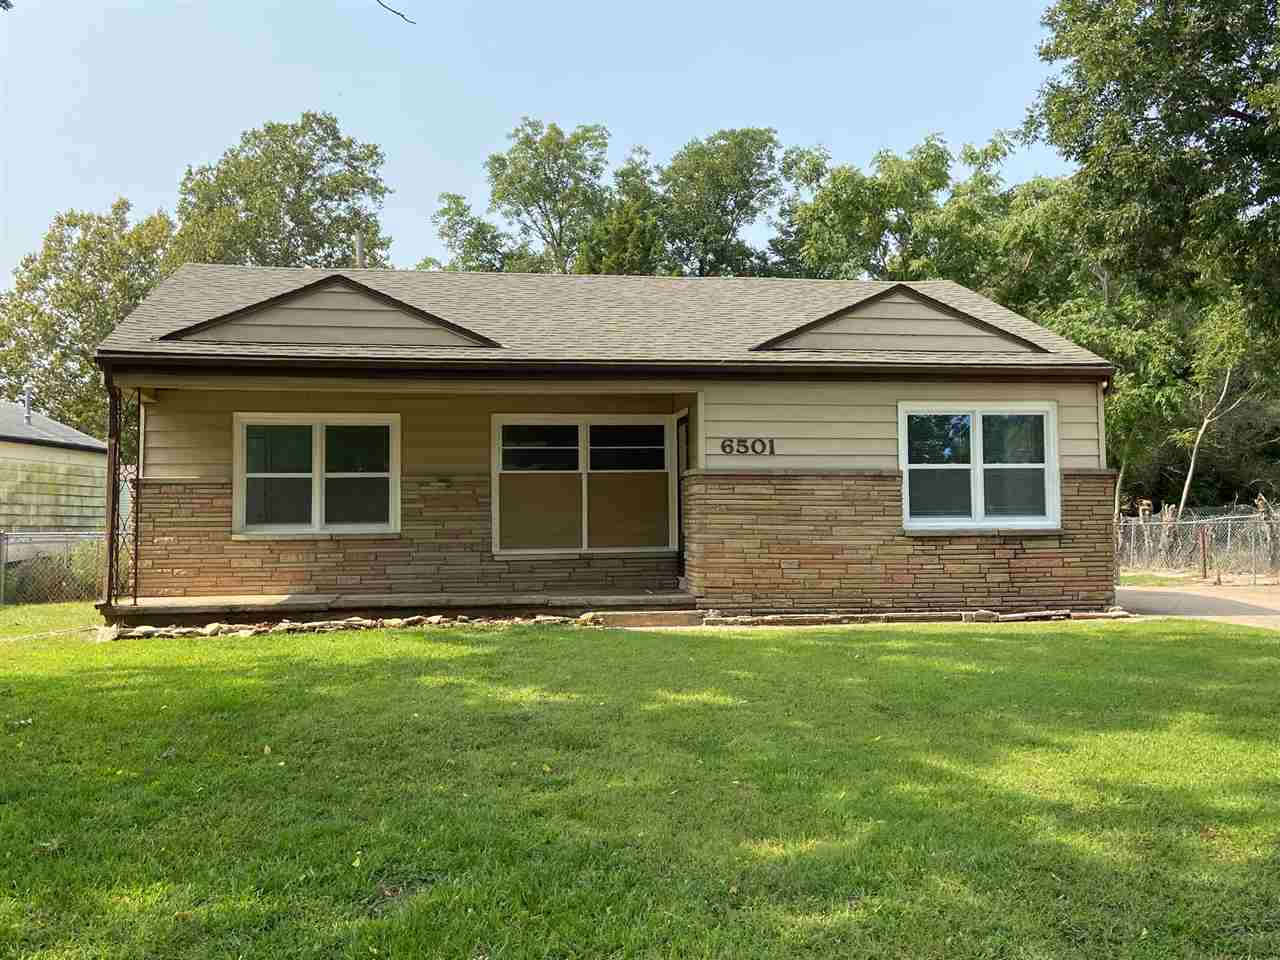 very nice home priced right good nieghbor hood must see this one